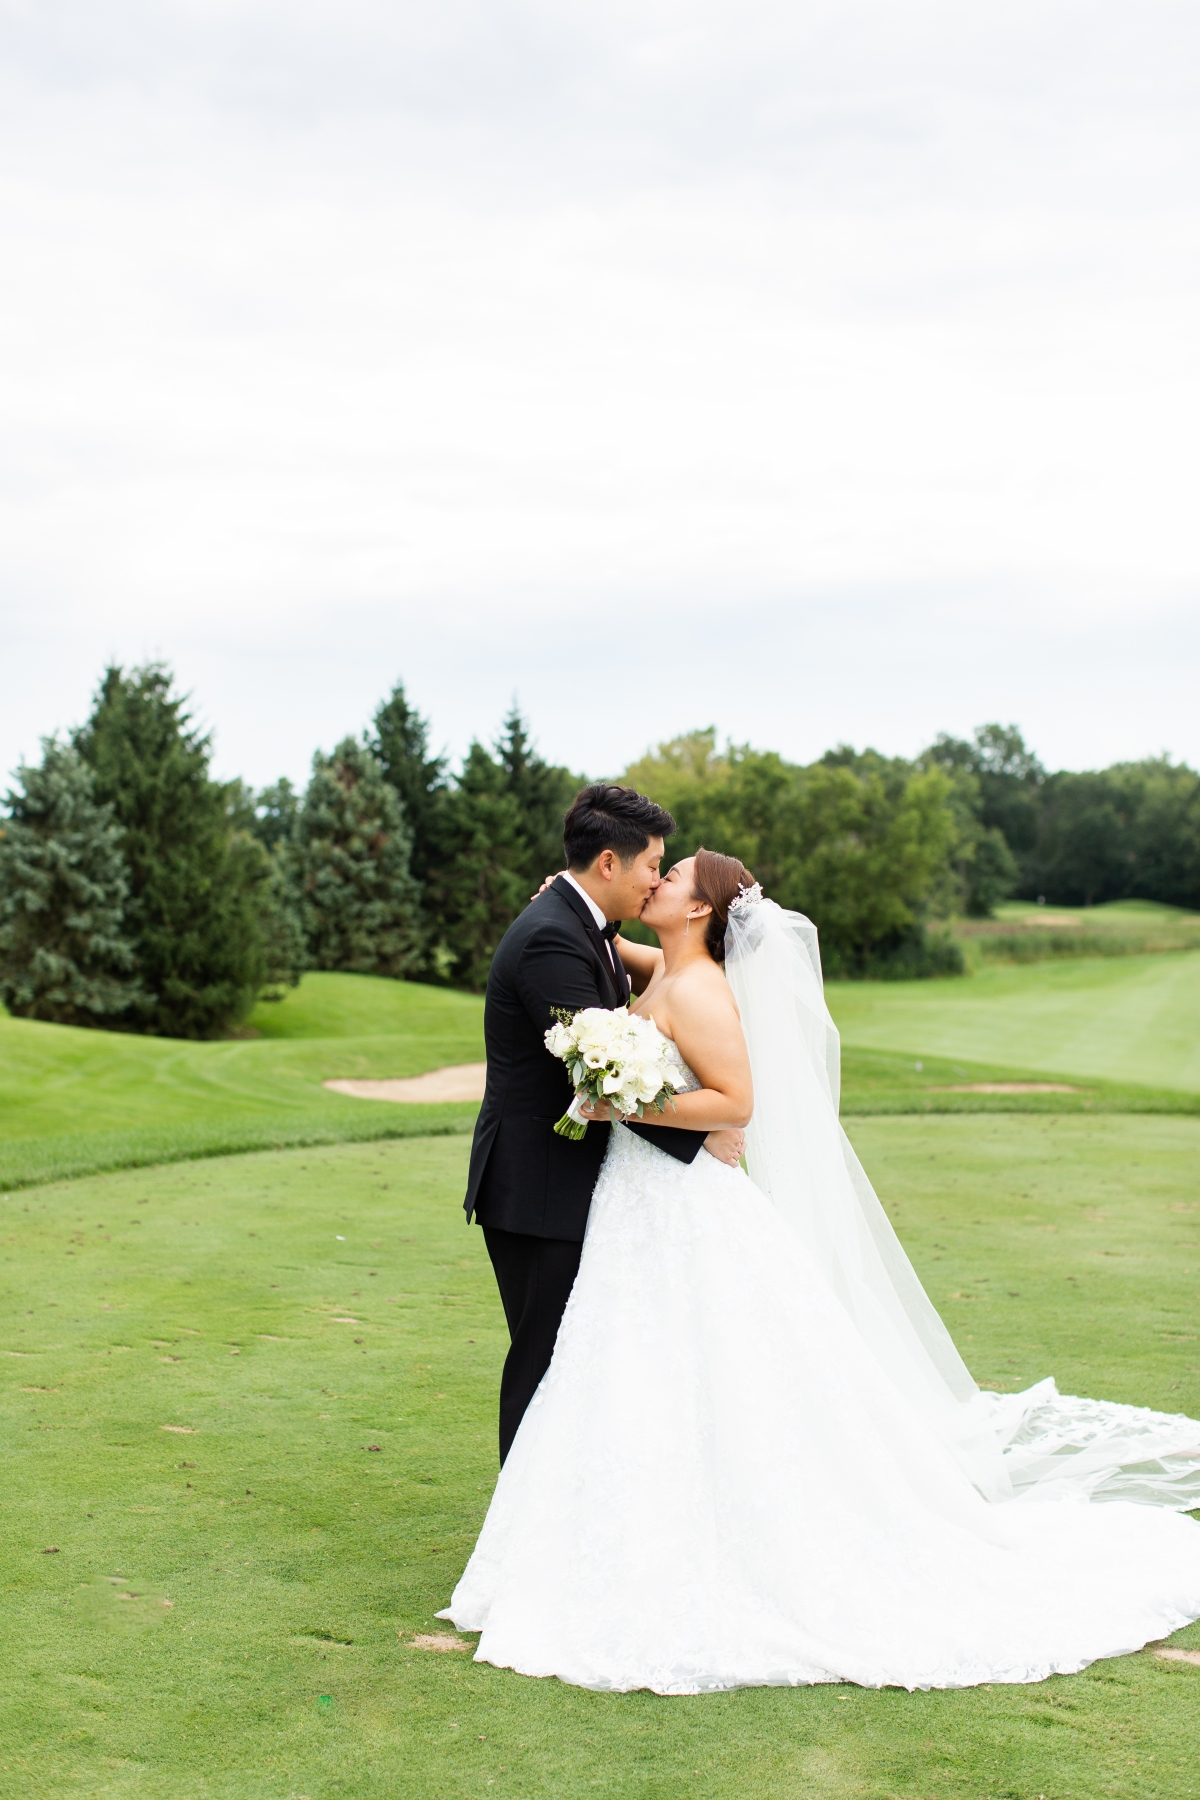 Classic White and Green Wedding with Traditional Korean Touches